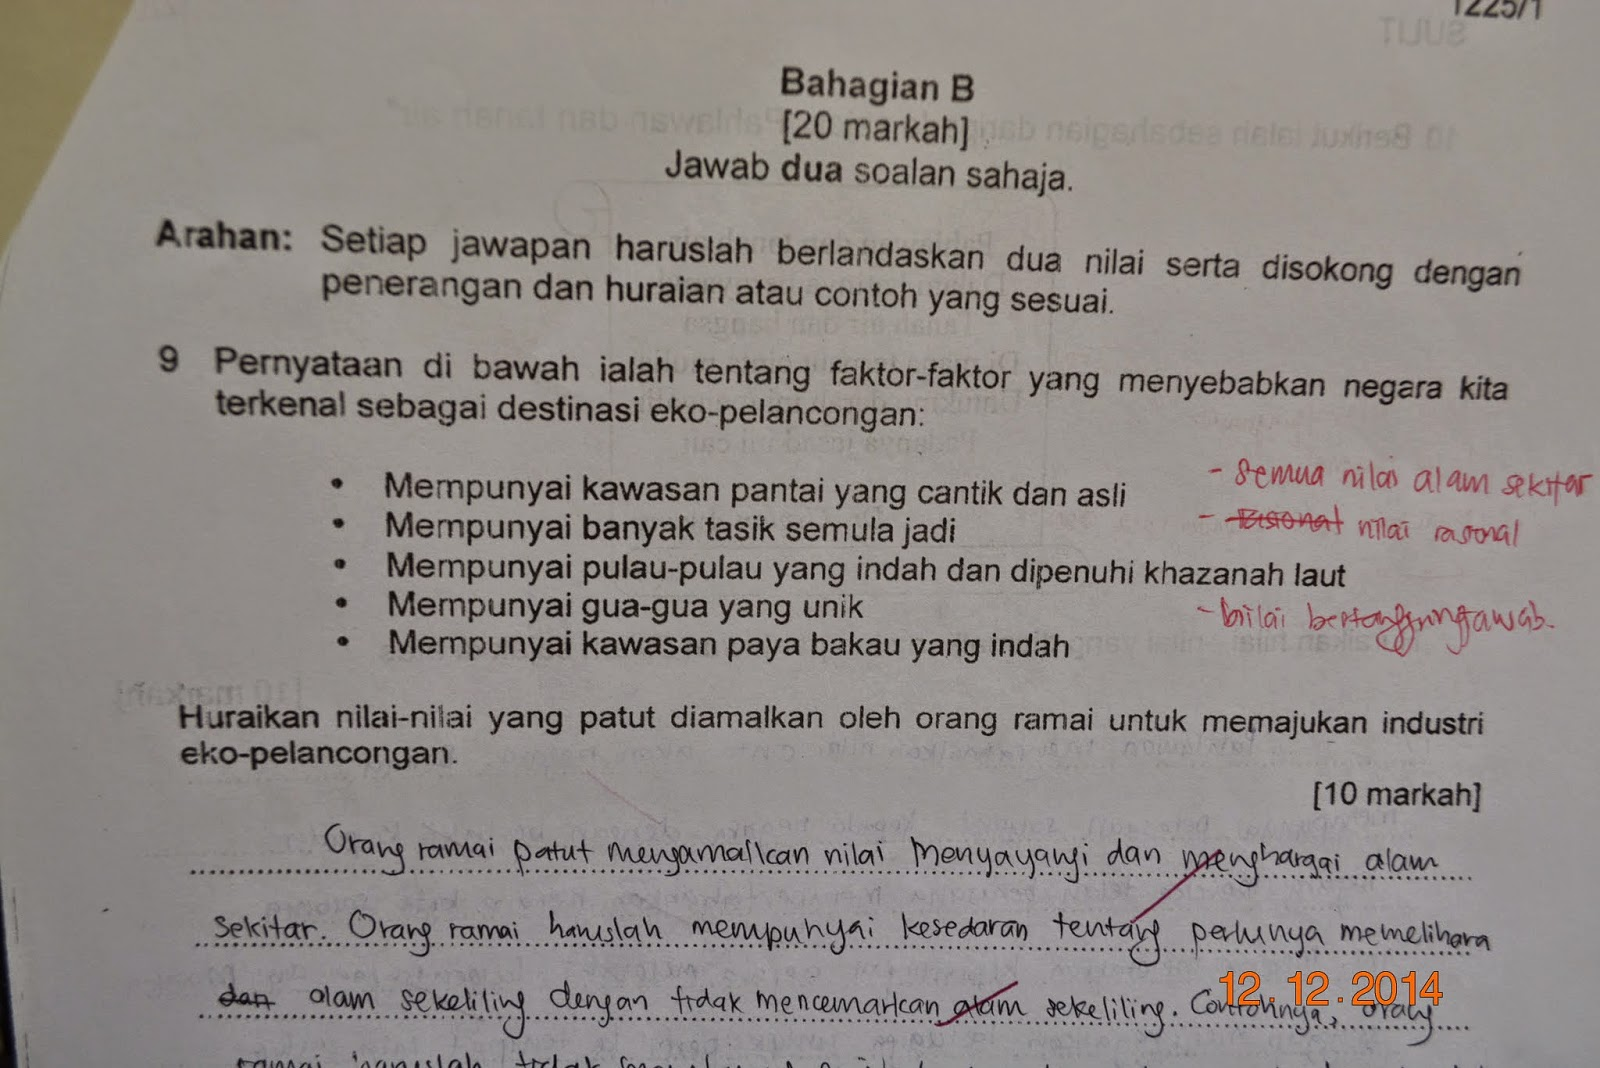 essay physics spm view full image